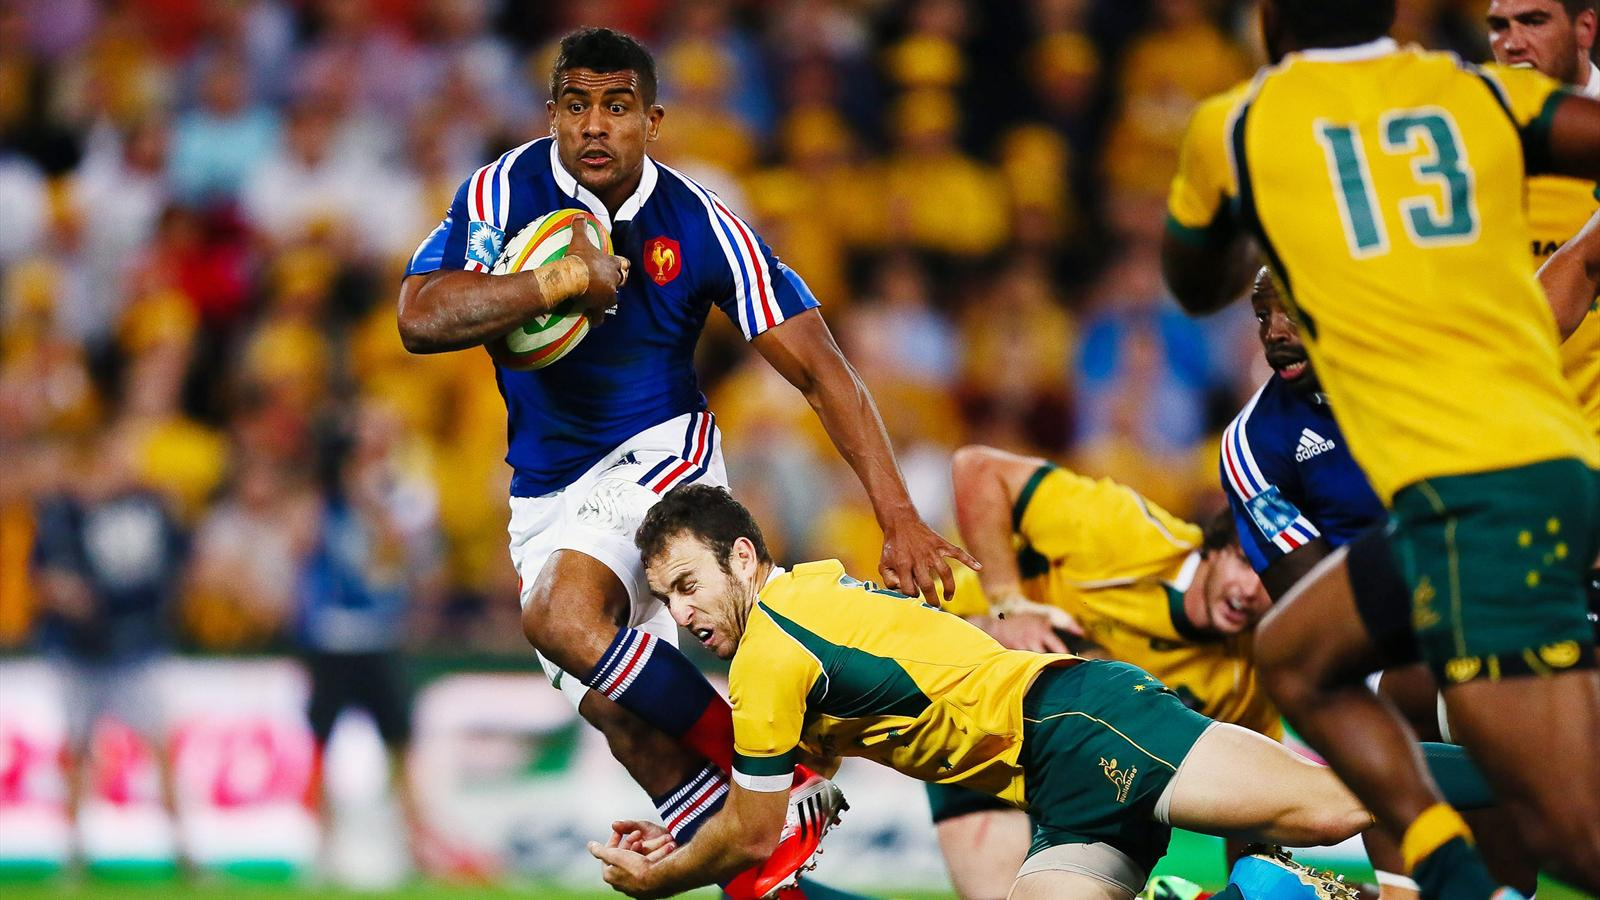 Rugby France Australie en direct live streaming